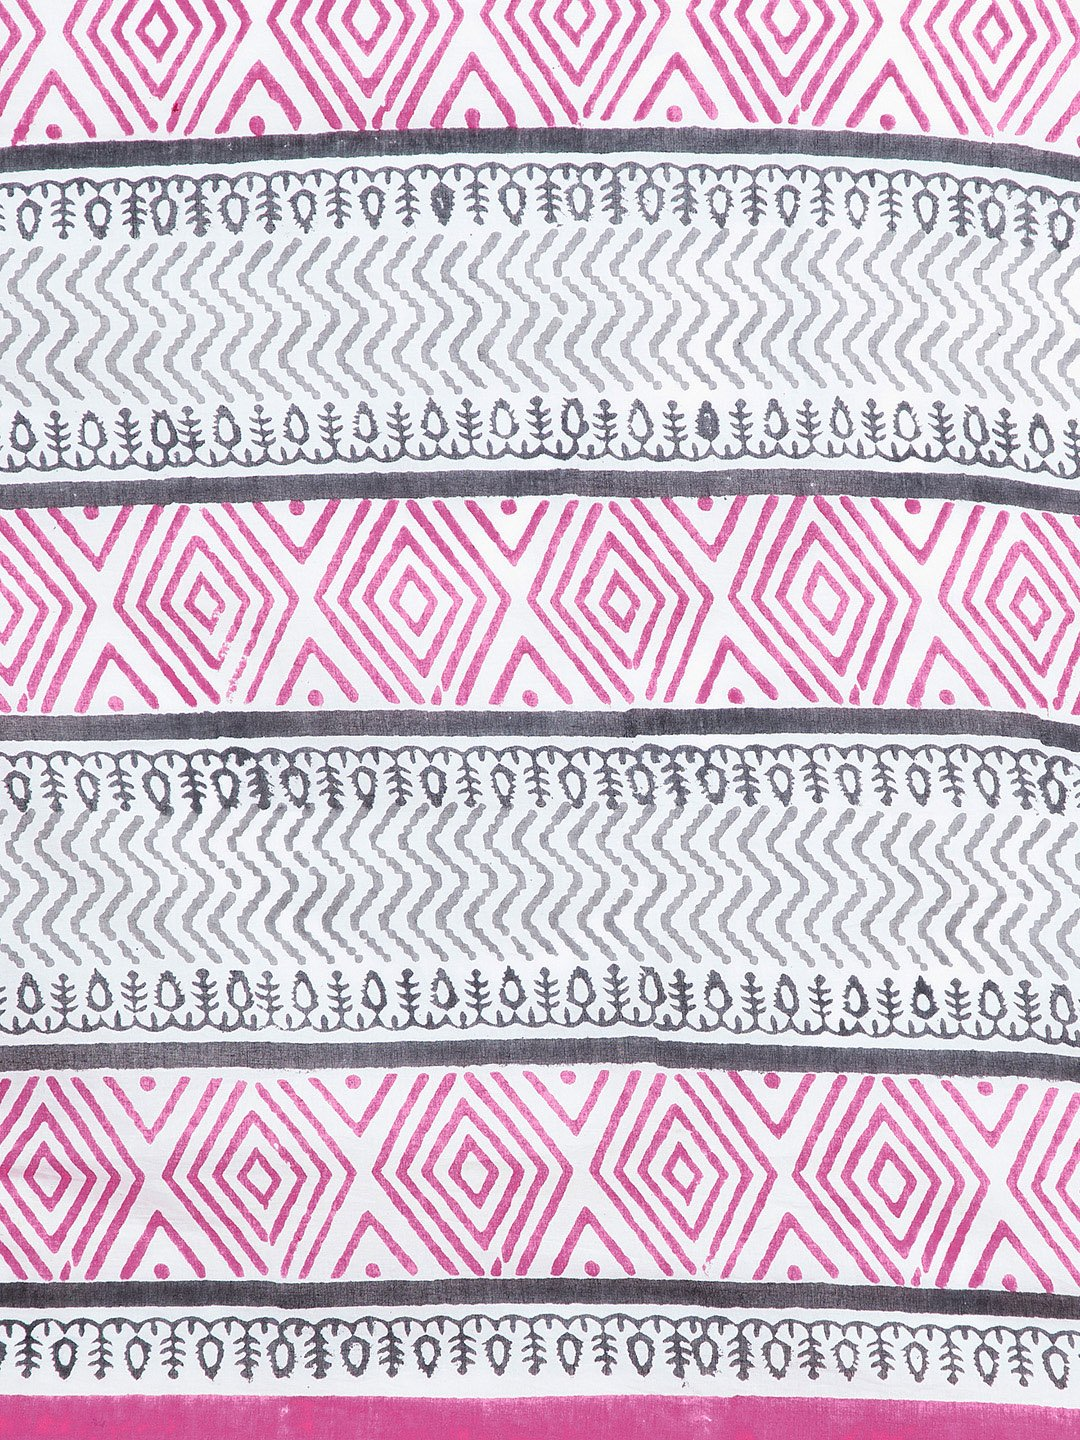 White & Pink Mughal Hand Block Print Handcrafted Cotton Saree-Saree-Kalakari India-BHKPSA0020-Cotton, Geographical Indication, Hand Blocks, Hand Crafted, Heritage Prints, Sanganeri, Sarees, Sustainable Fabrics-[Linen,Ethnic,wear,Fashionista,Handloom,Handicraft,Indigo,blockprint,block,print,Cotton,Chanderi,Blue, latest,classy,party,bollywood,trendy,summer,style,traditional,formal,elegant,unique,style,hand,block,print, dabu,booti,gift,present,glamorous,affordable,collectible,Sari,Saree,printed, ho